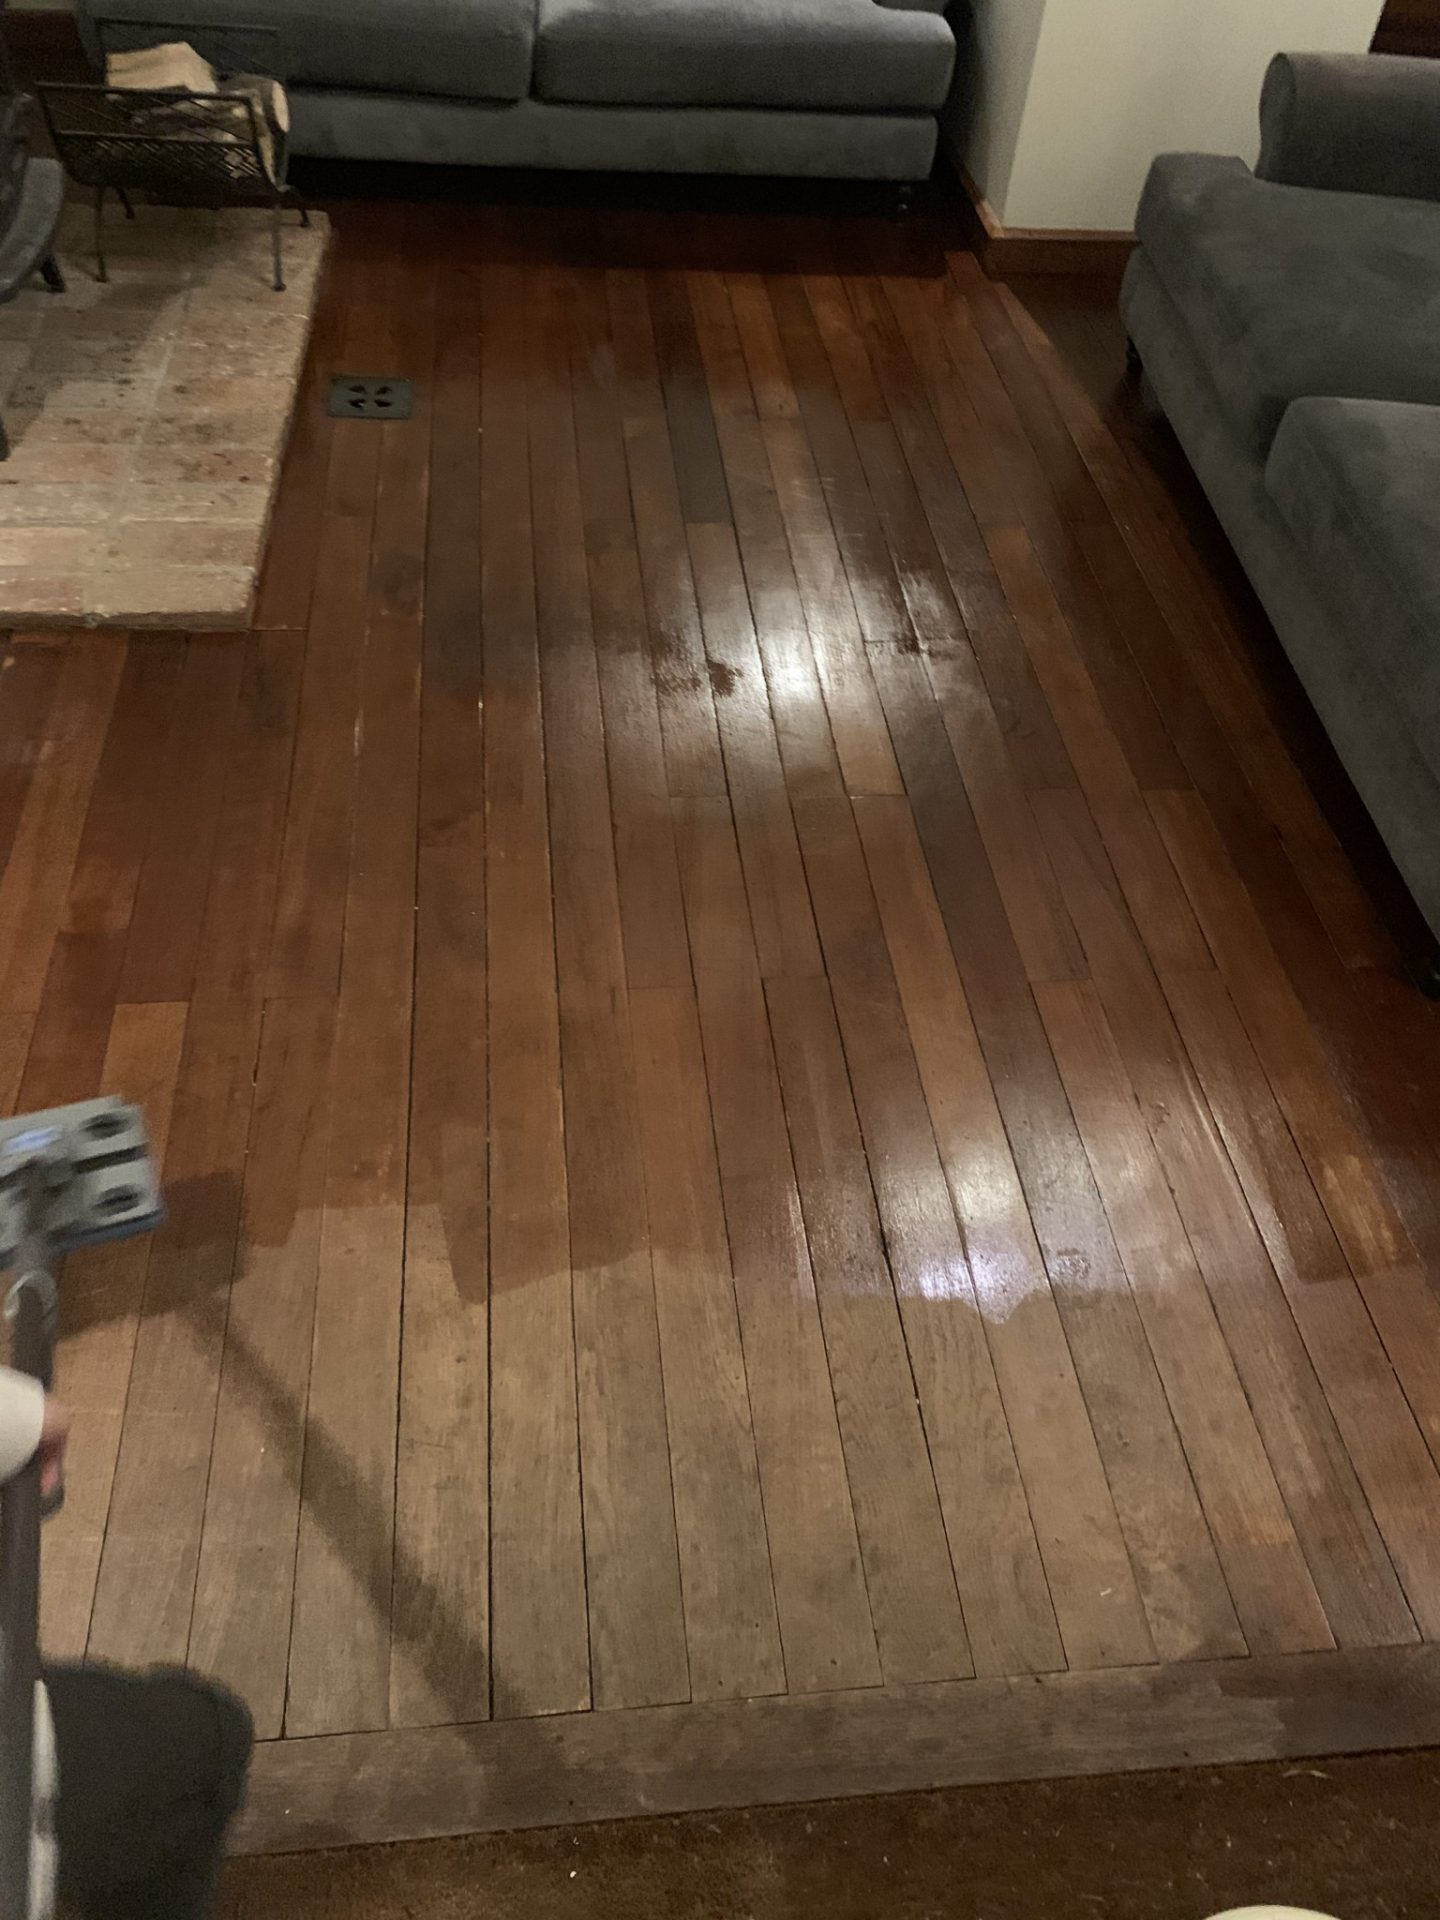 oiled floor; mop; wooden floor